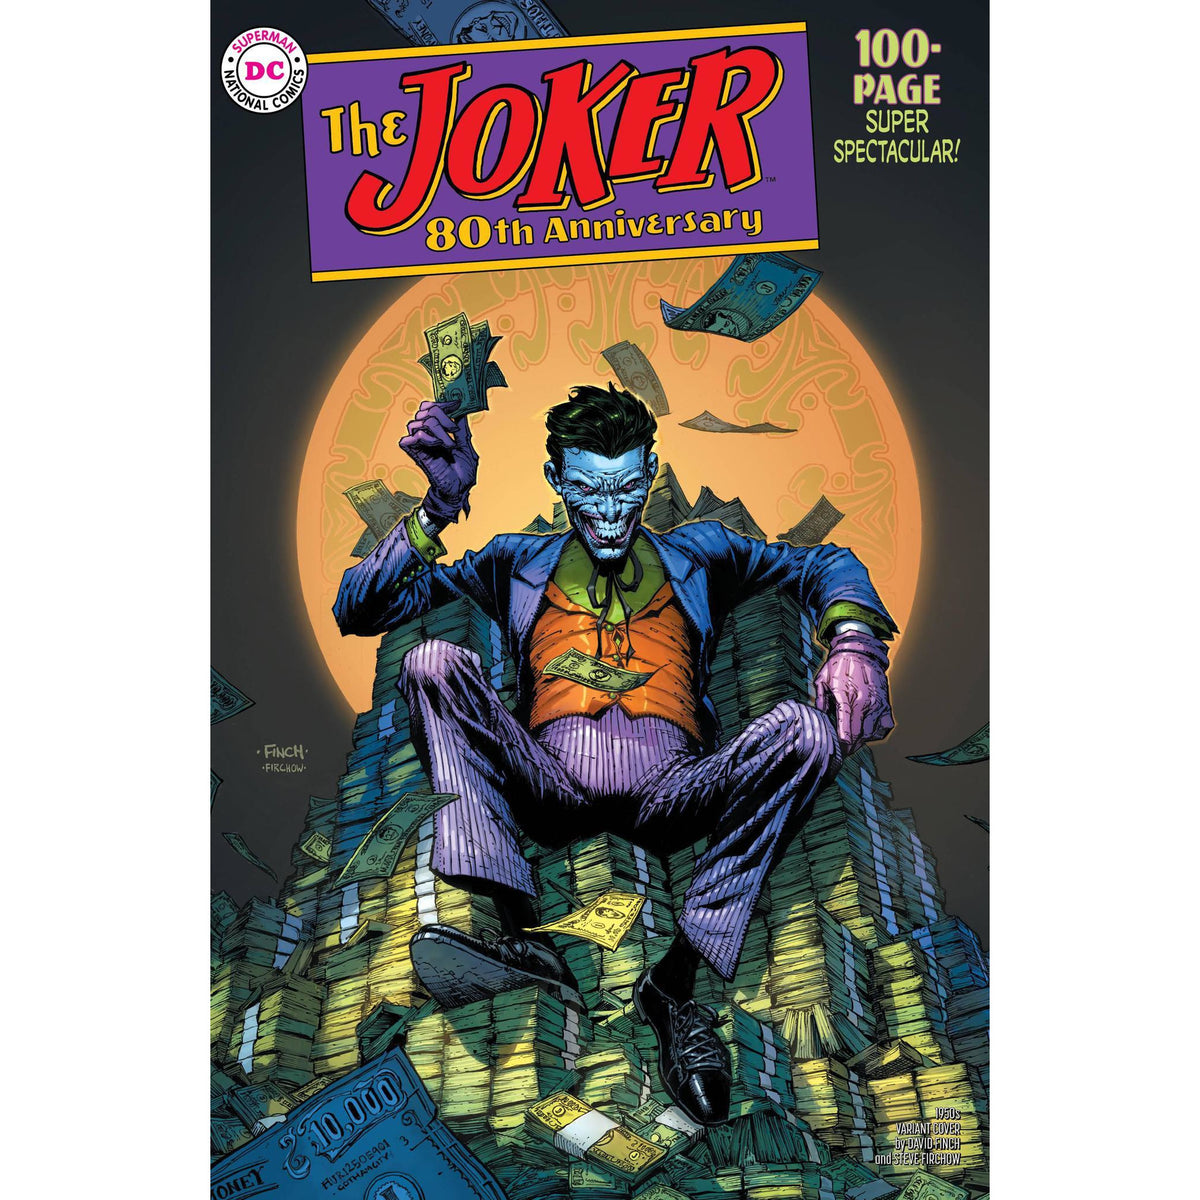 JOKER 80TH ANNIVERSARY 100 PAGE SUPER SPECTACULAR #1 1950s DAVID FINCH VARIANT COVER